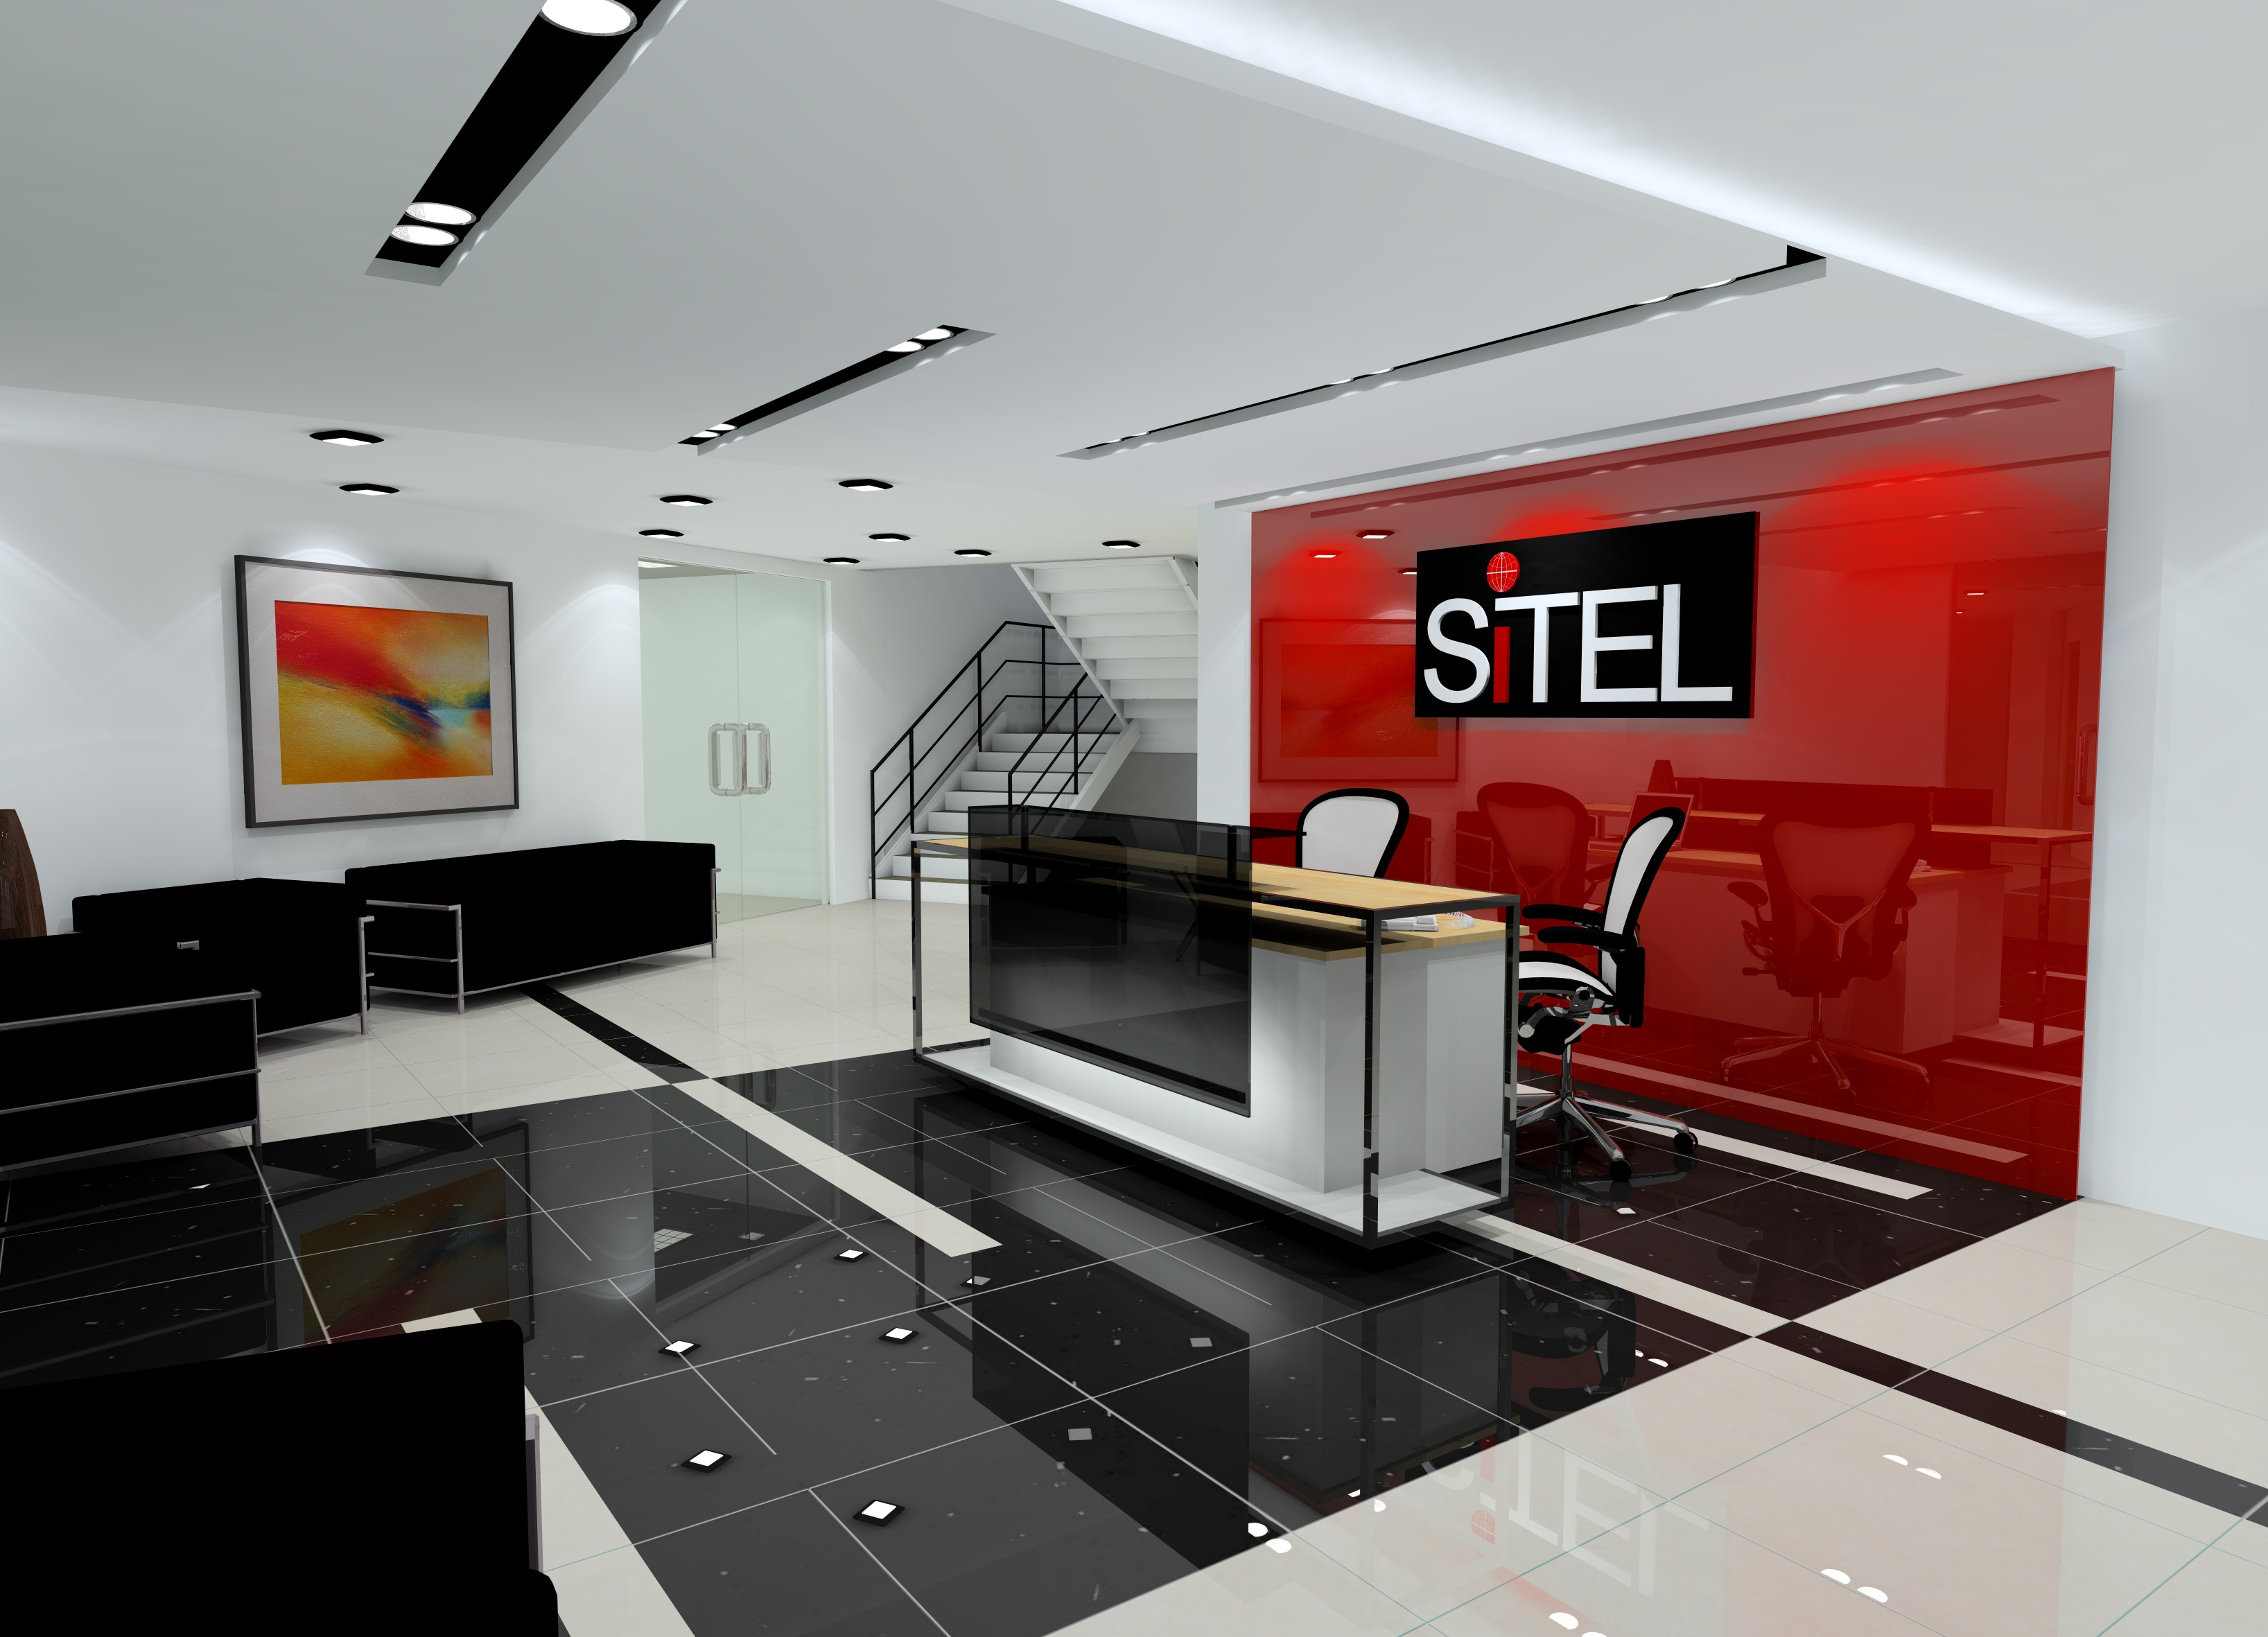 Sitel Tarlac Call Center By Errol Orellana At Coroflot Com